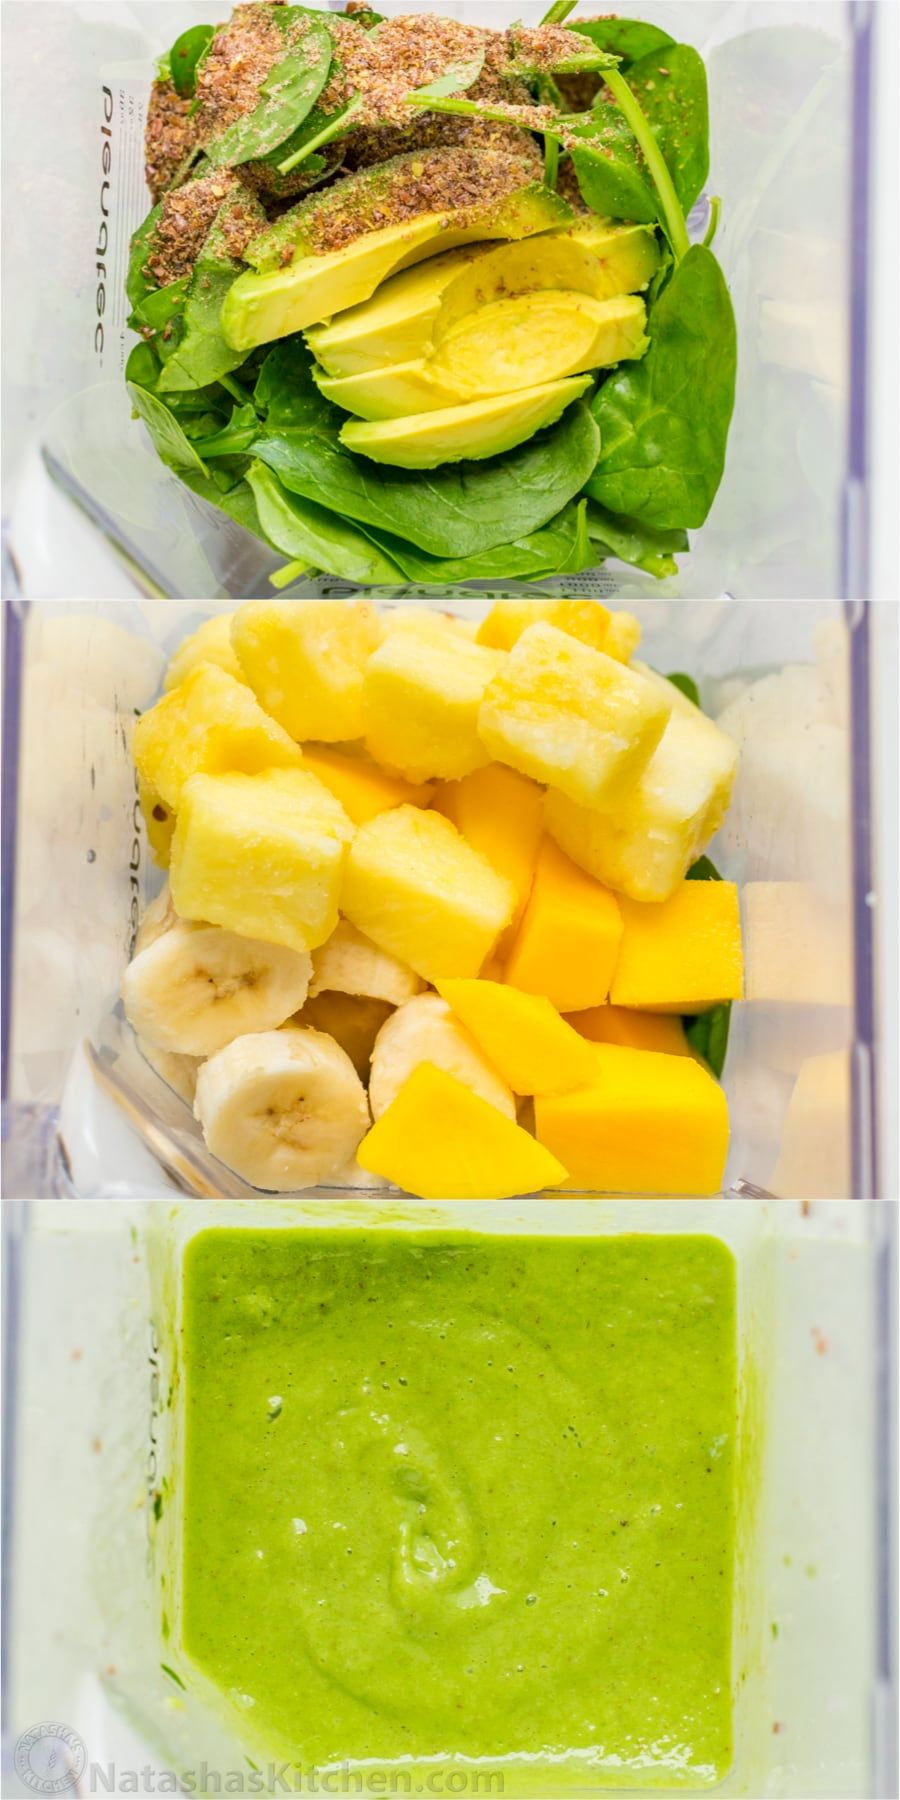 A healthy green smoothie bowl packed with mango pineapple